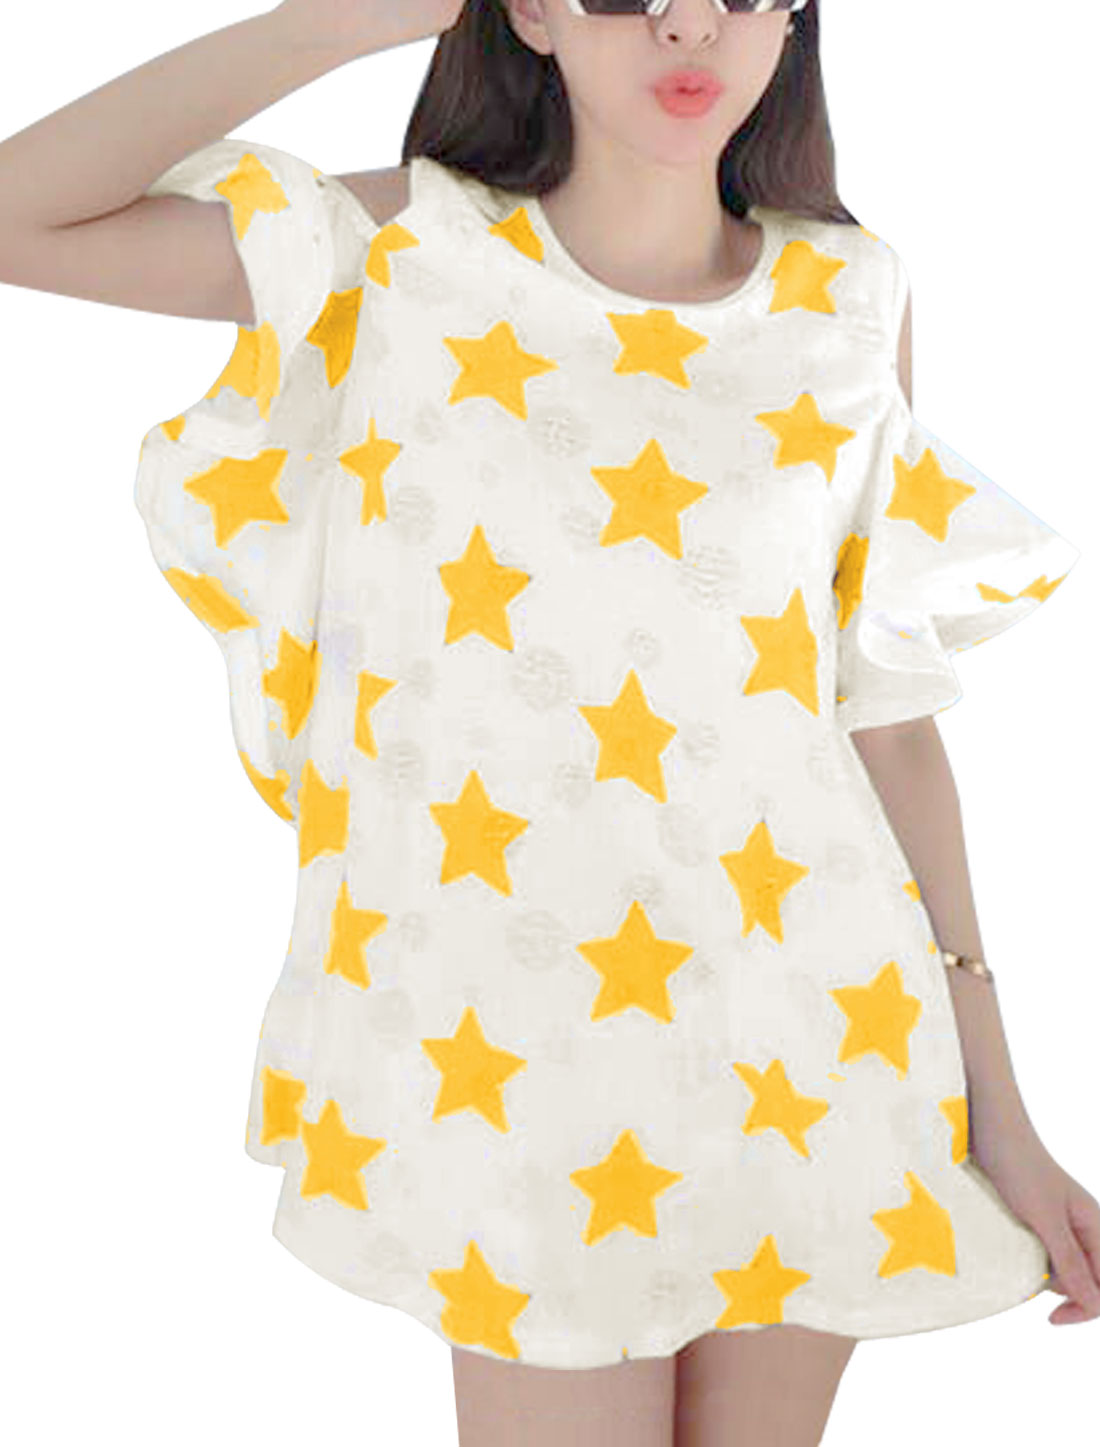 Lady's Cut Out Shoulder Ruffles Sleeves Stars Pattern Yellow Casual Tunic Top XS